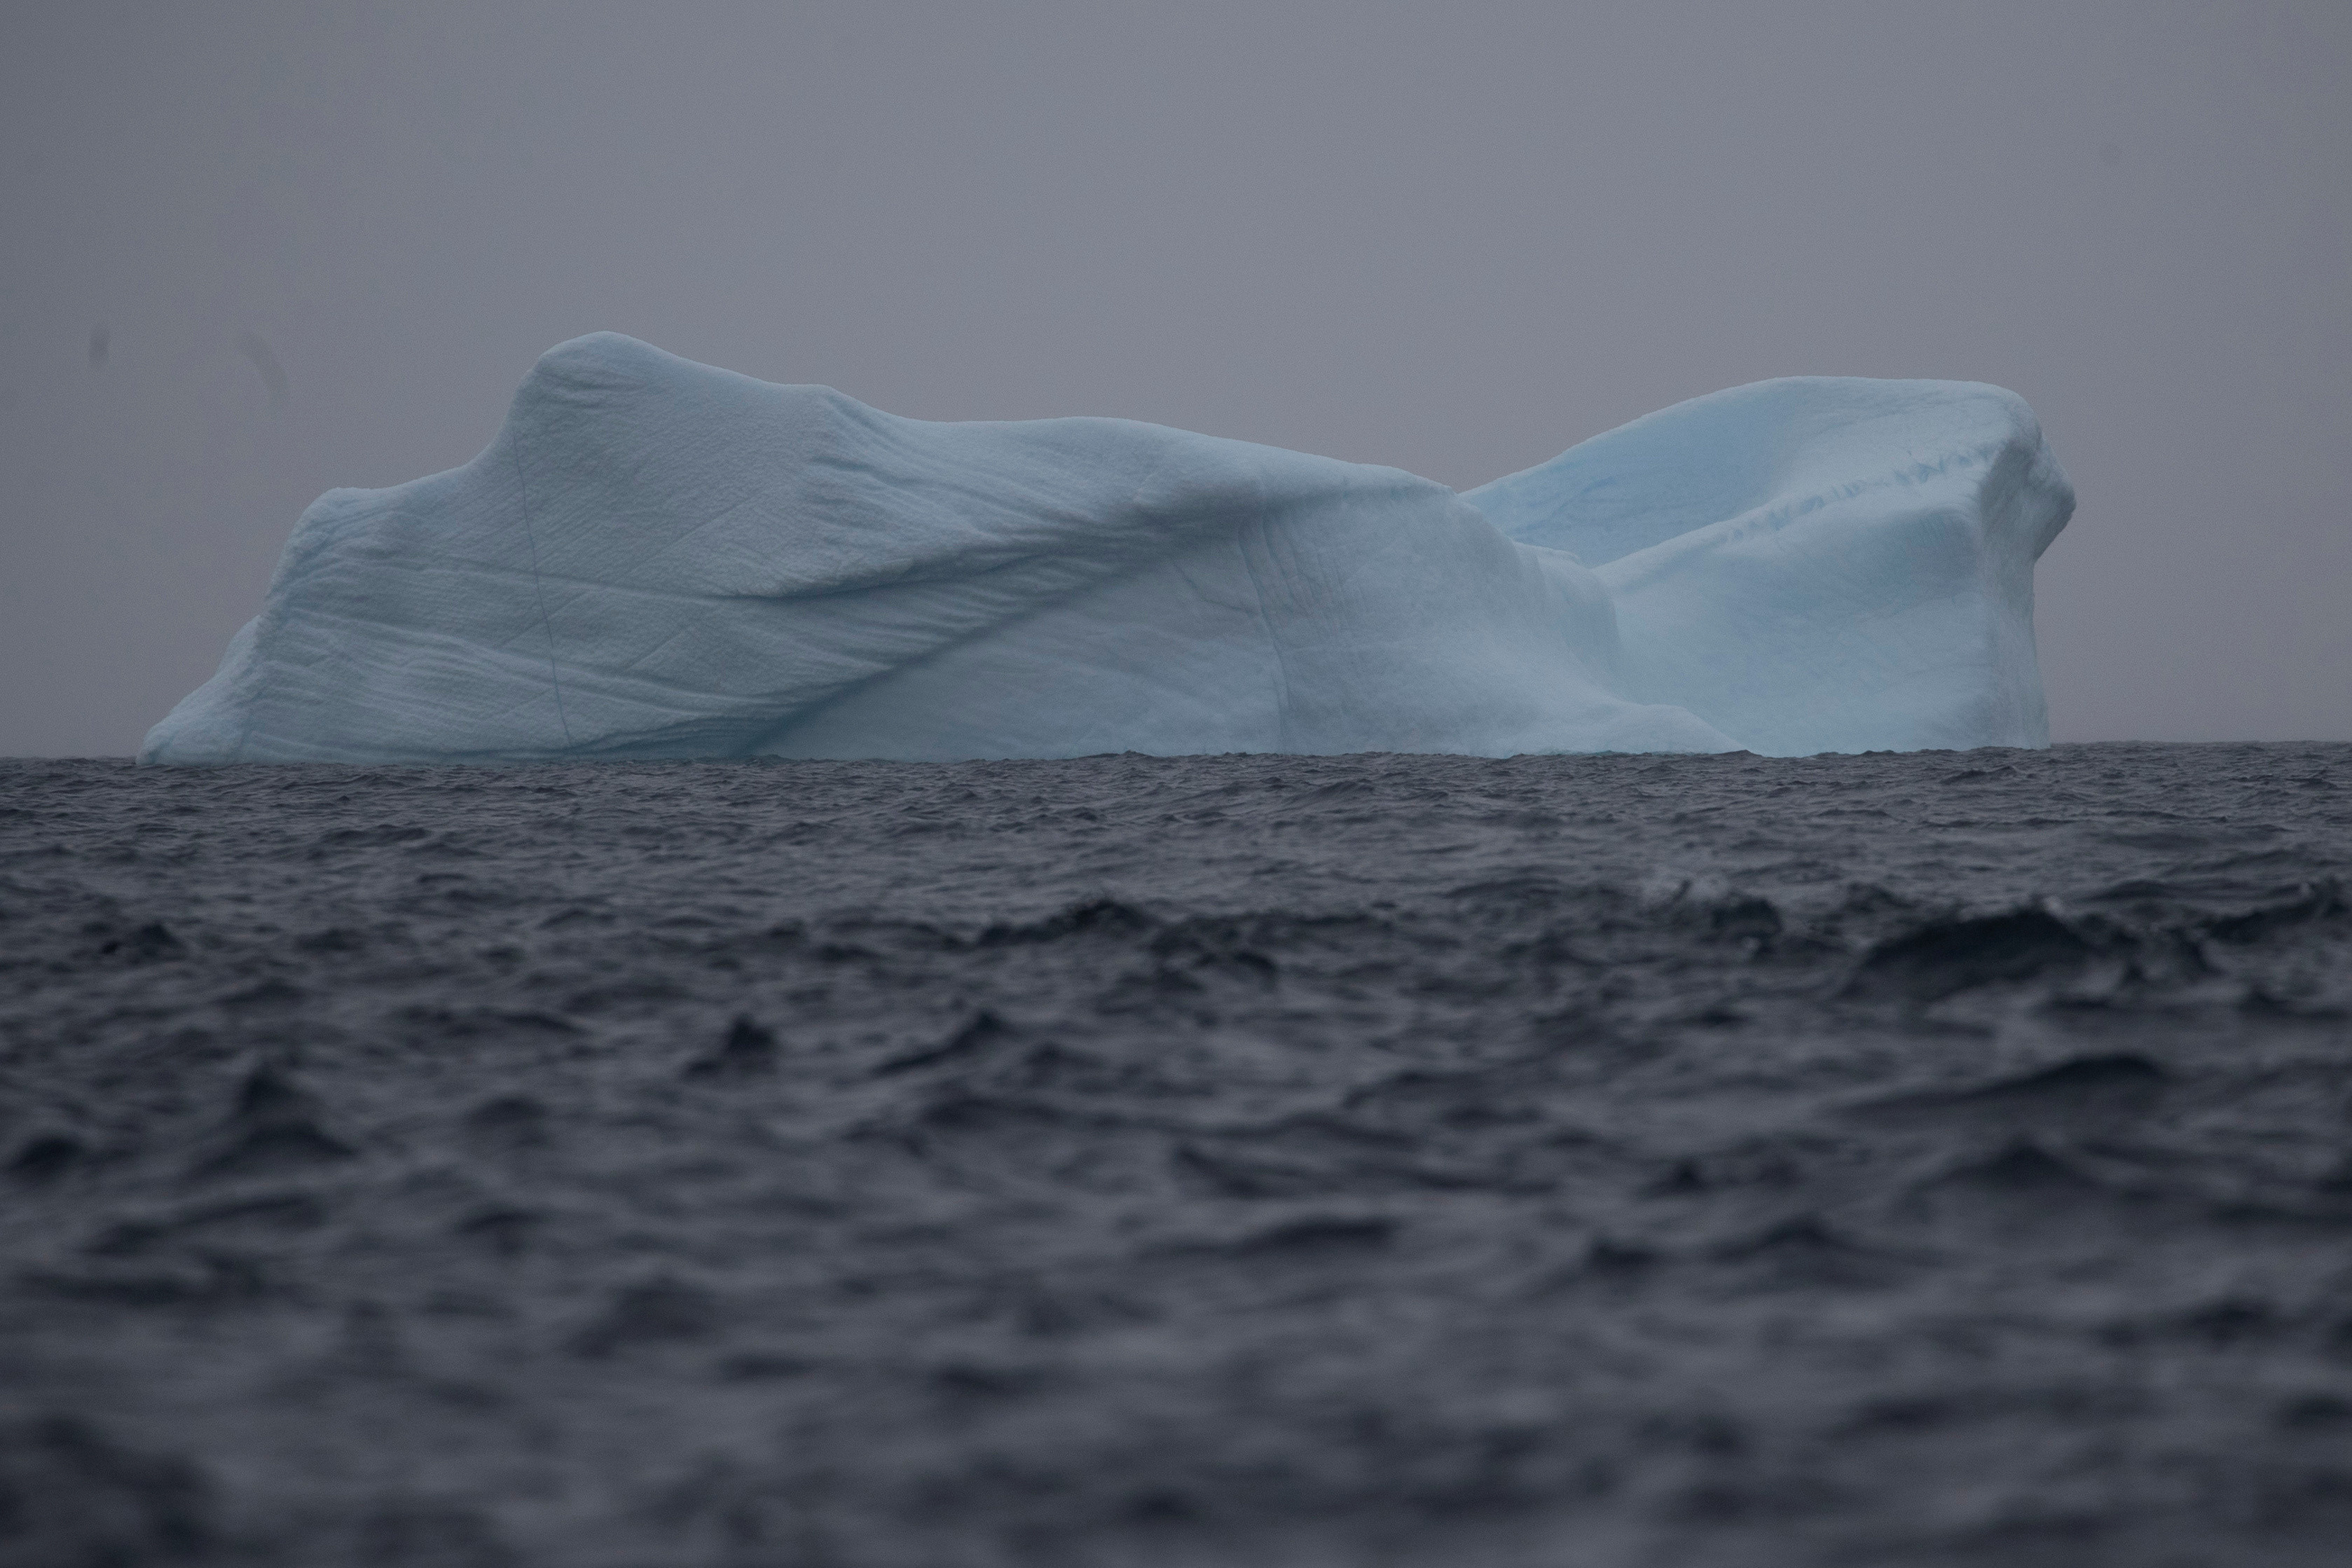 An iceberg floats near Two Hummock Island, Antarctica, February 1, 2020. Picture taken February 1, 2020. REUTERS/Ueslei Marcelino - RC25ZE97LQAU